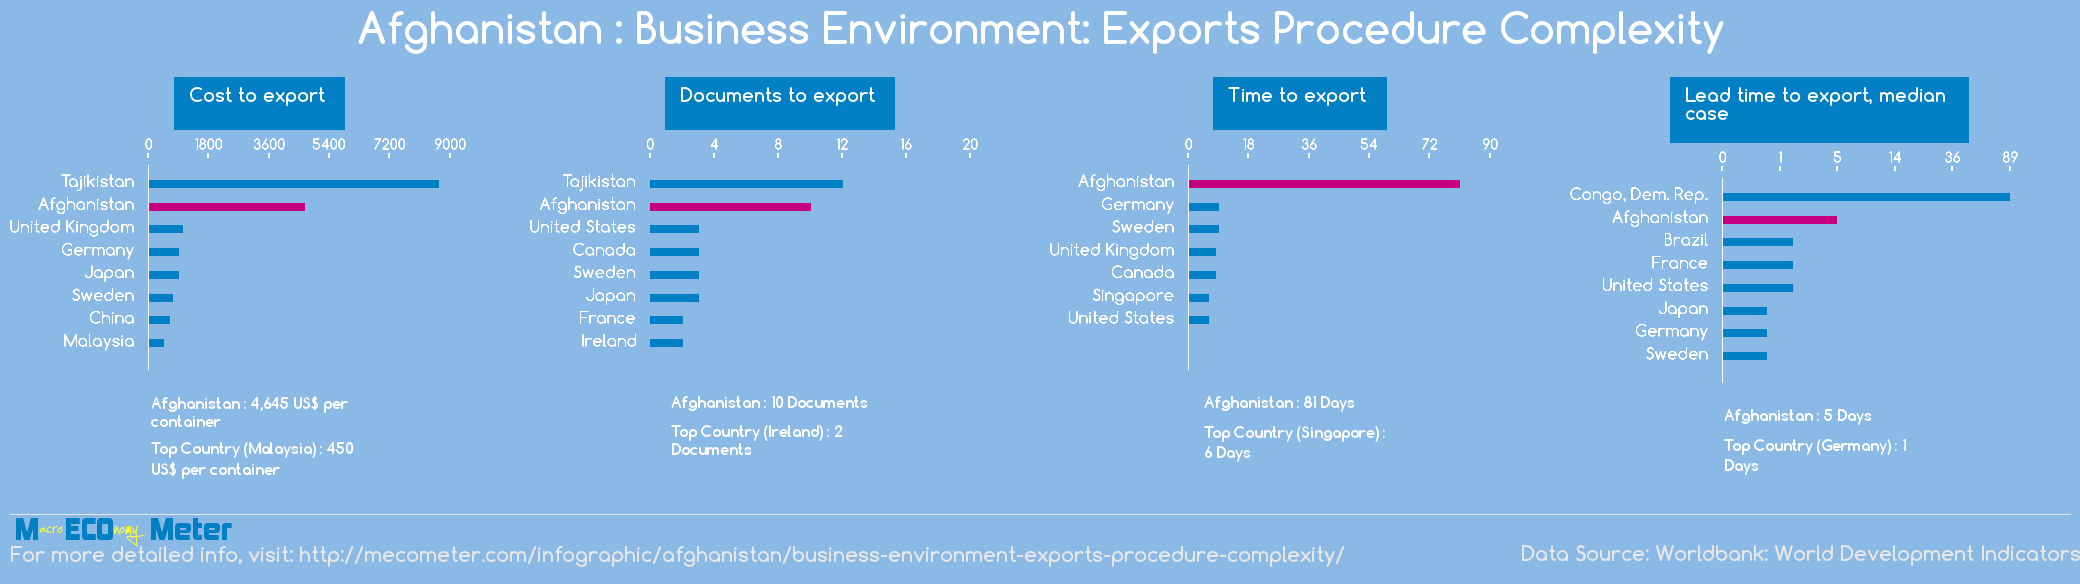 Afghanistan : Business Environment: Exports Procedure Complexity